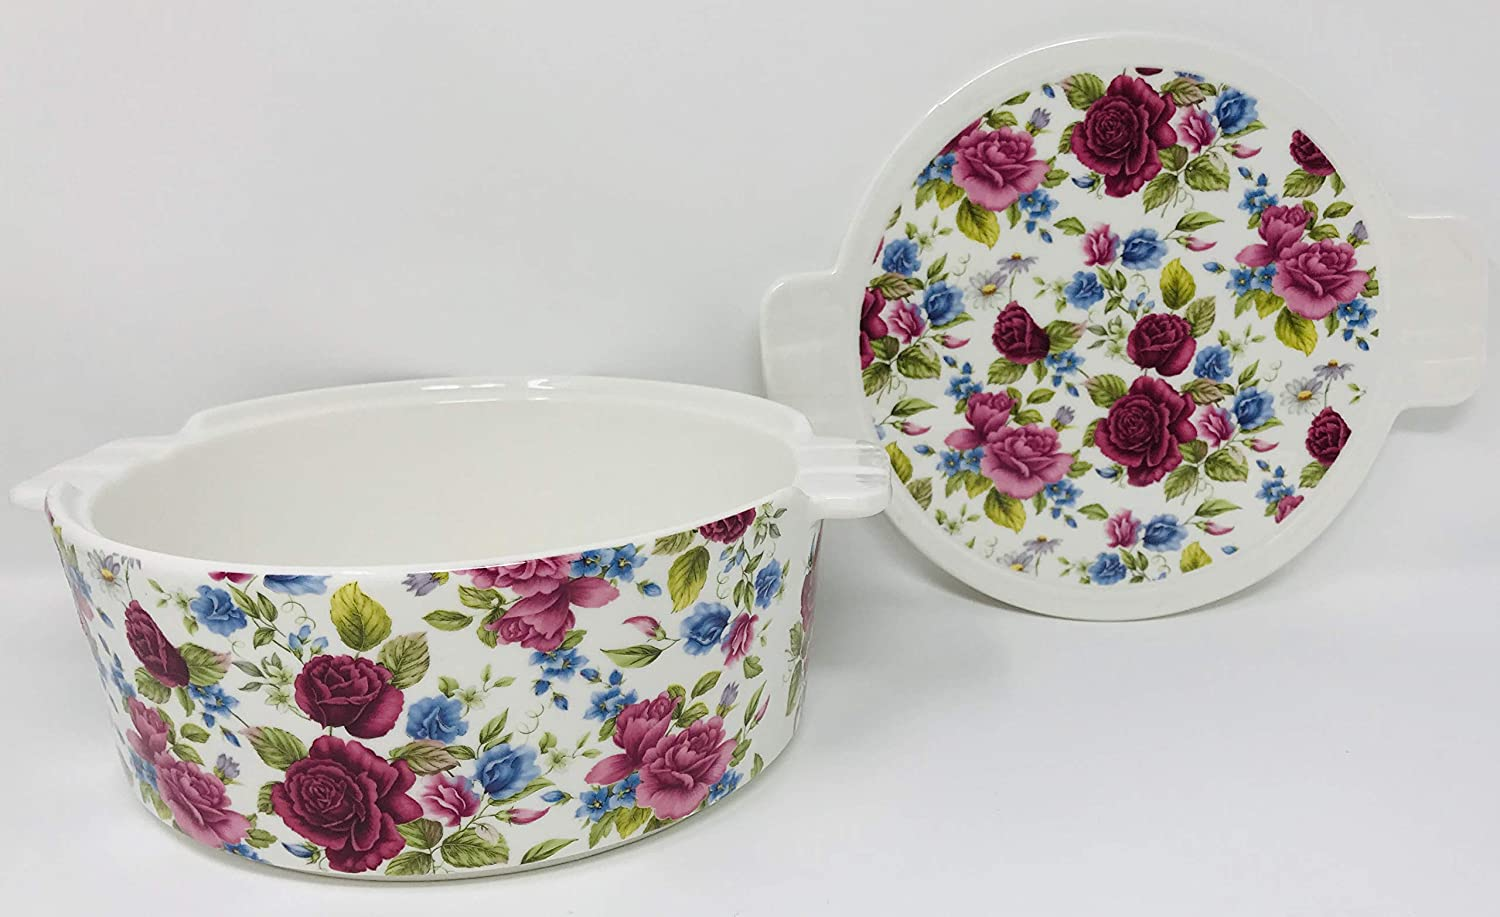 Use The Lid for A Tray Or Trivet Round 8 x 3.25 inches Casserole Cranberry Pink /& Blue Roses Decorate This 3 in 1 Oven Safe Lidded Porcelain Baking Dish